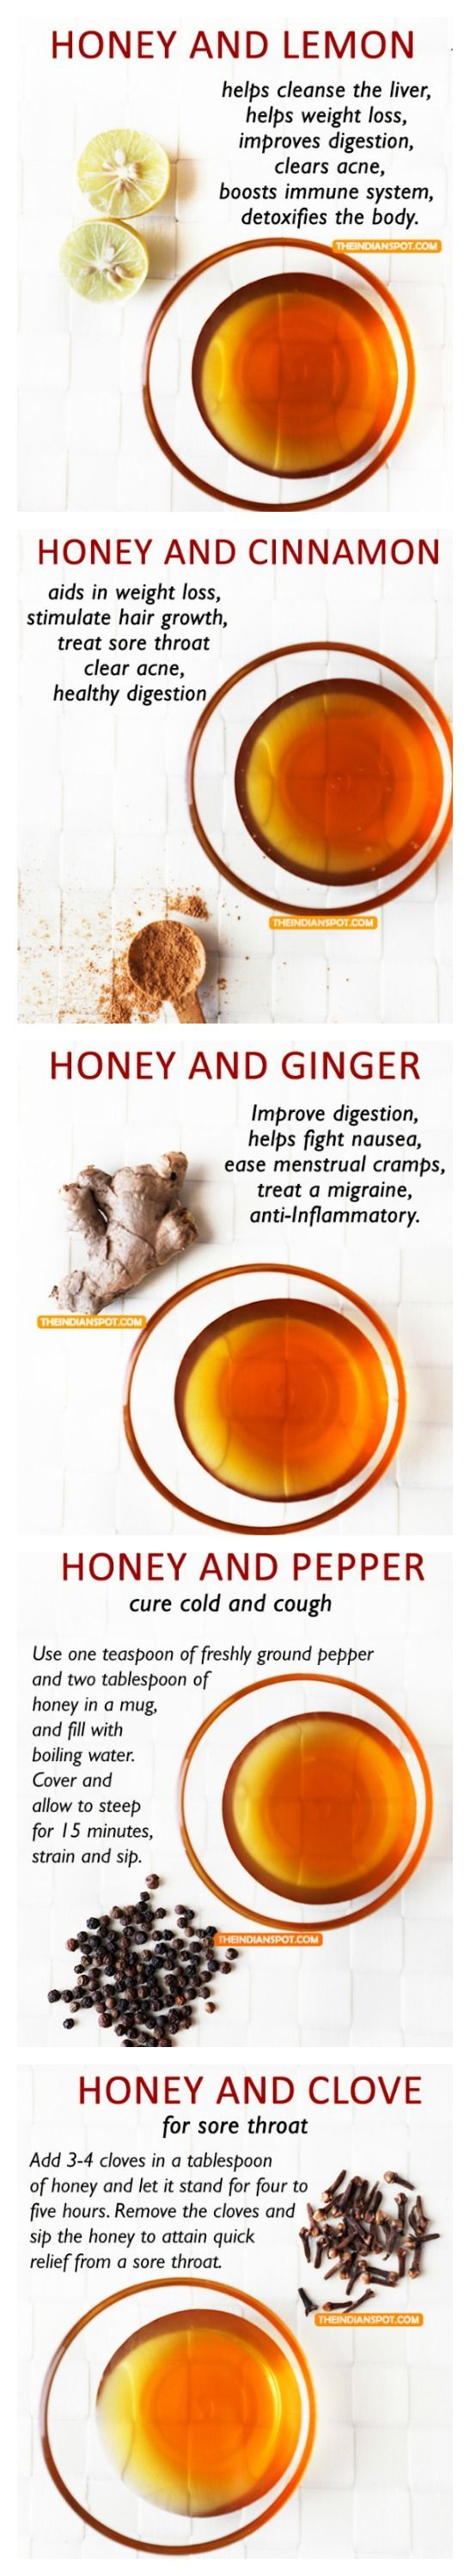 ADD BLACK PEPPER WHEN USING TURMERIC IT HELPS THE BODY ABSORB BETTER AND YOU WON'T NOTICE THE TASTE,ADD HONEY,1 TBSP'PLUS 1/4 TSP.S GINGER,TURMERIC AND CINNAMON, MIX TO A PASTE,1/4 FILL CUP WITH COLD WATER ADD A SQUEEZE OF LEMON AND TSP'APPLE CIDAR VINEGA